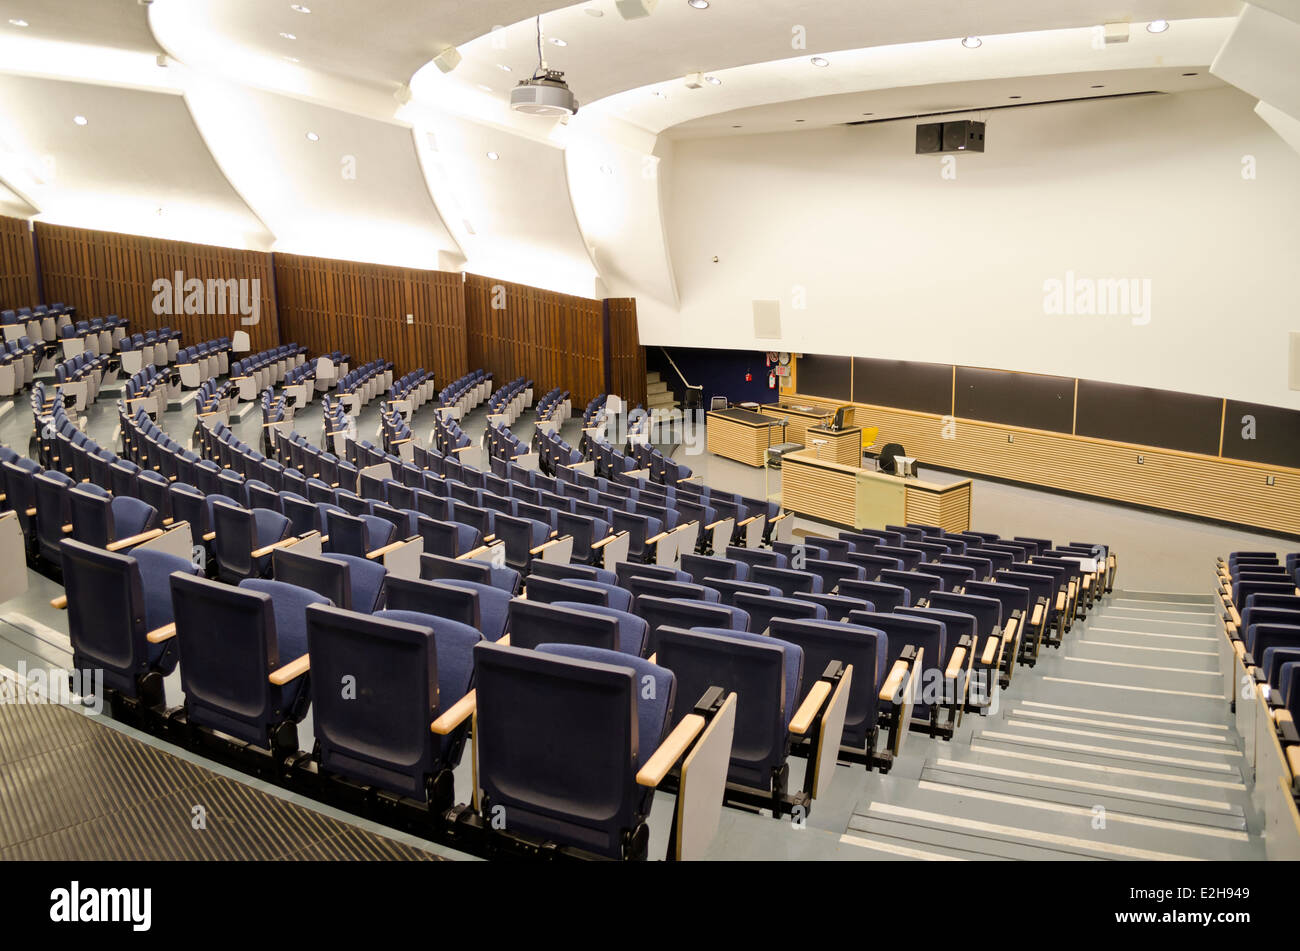 university lecture hall problems In six lecture halls dk1-dk6 of the faculty of engineering at university of  iaq problems are generally due to improper ventilation in the.